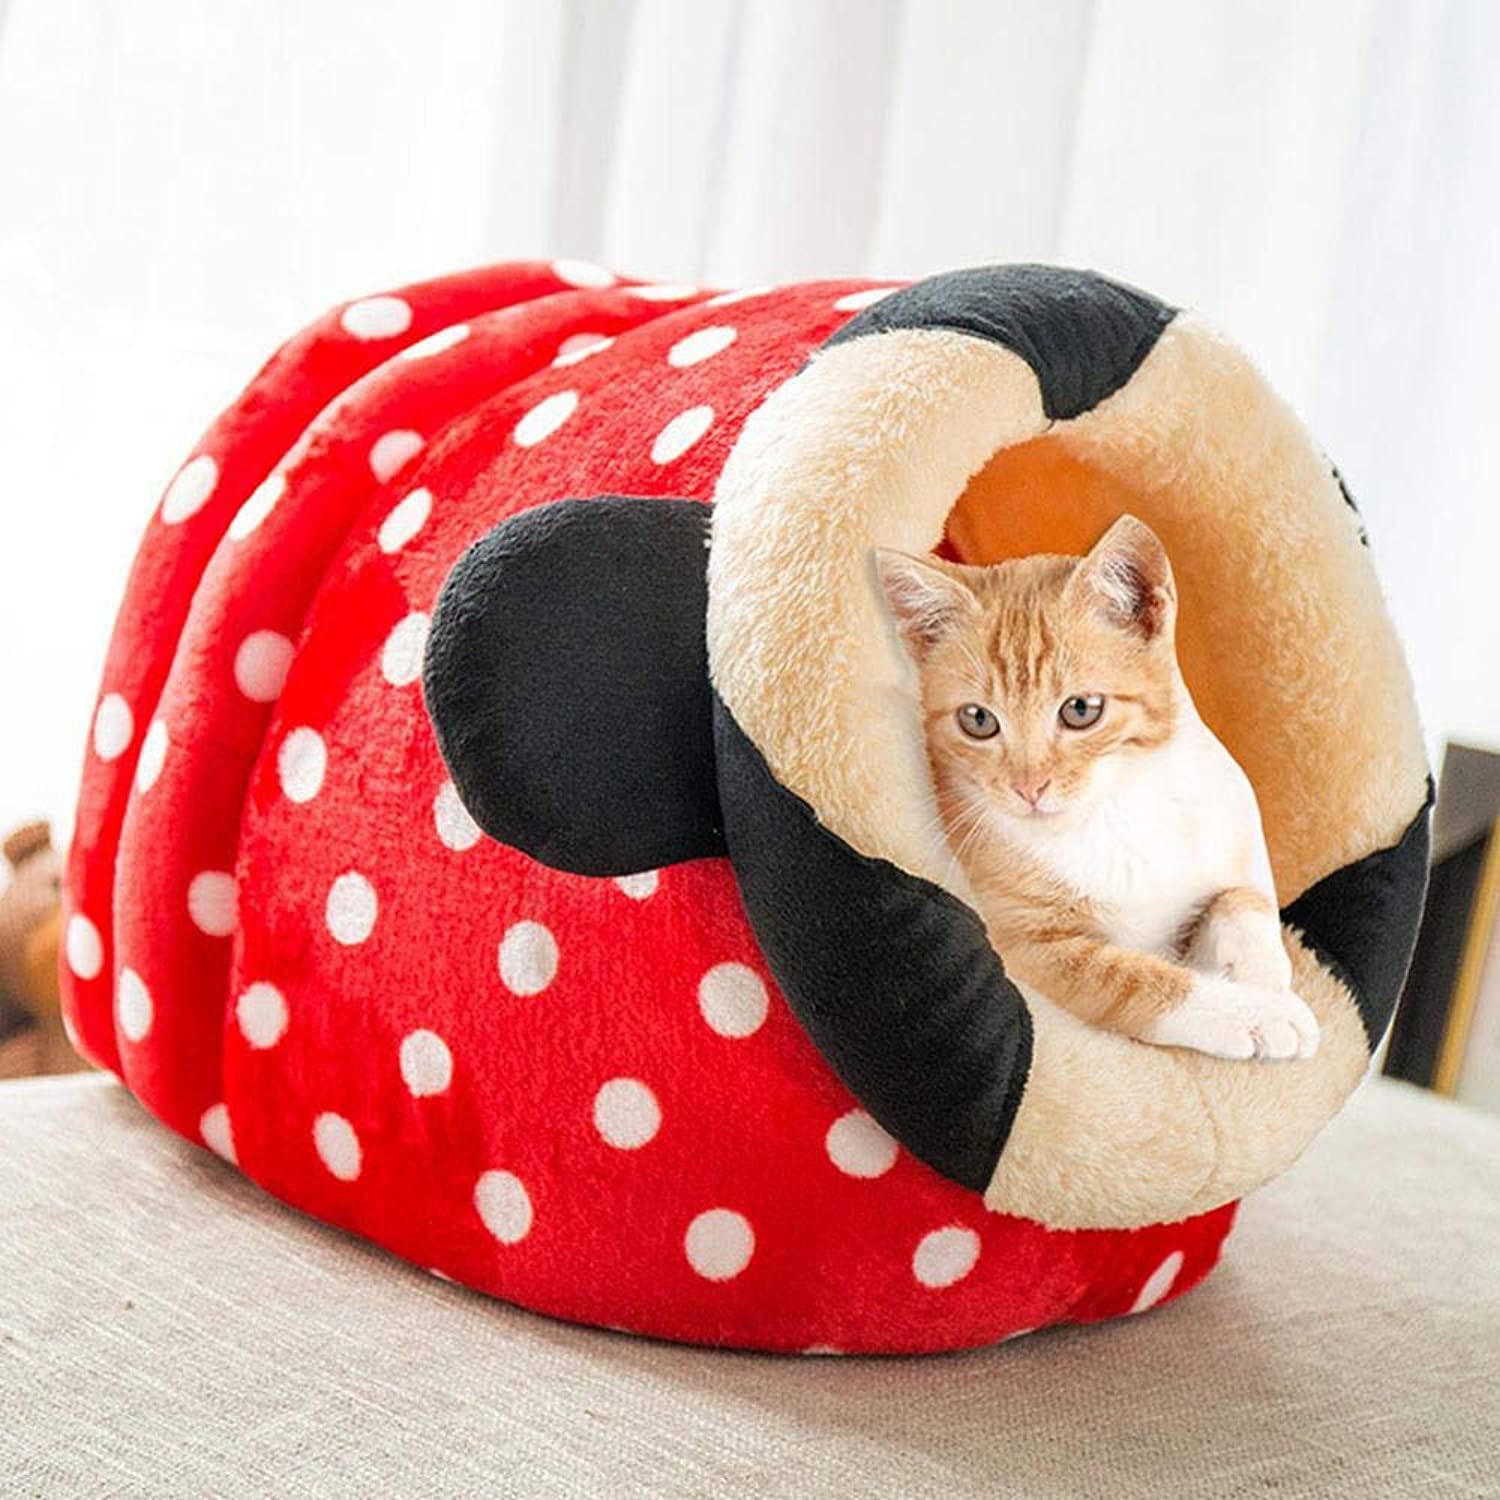 Dog Cat Sofa Bed  Tent Cave  Nest Cushion, AUOKER Soft Thick Warm Short Plush Washable and Detachable Pet Dog Cave Bed House Kennel with Pad, NonSlip, Easy Clean for Small Medium Large Dogs Cats